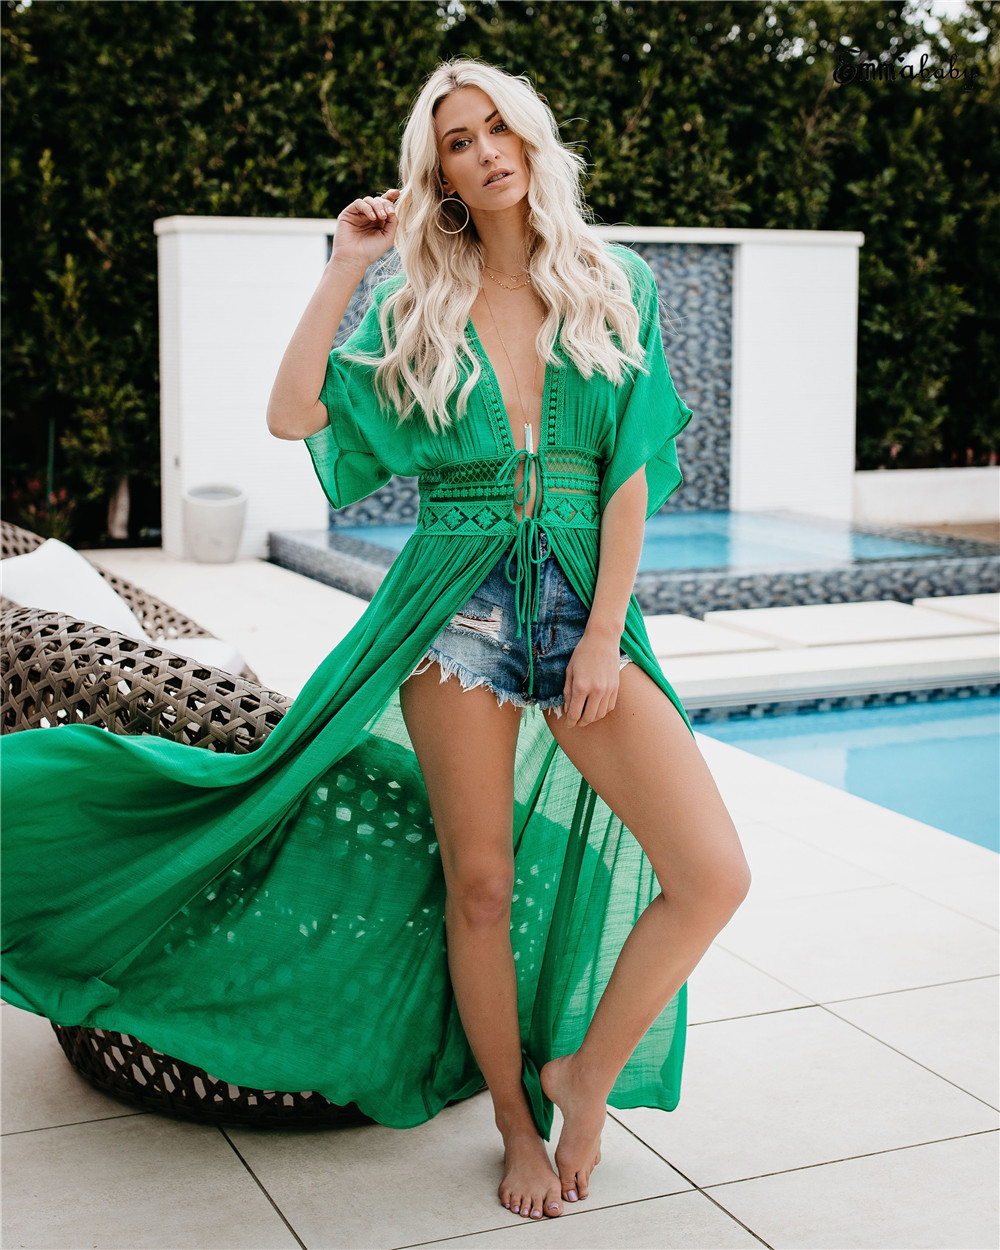 Women Chiffon Bikini Long Cover Up Summer Beach Dress Cardigan Long Cover-up Beachwear Beachdress Bathing Suit 2019 Fashion New